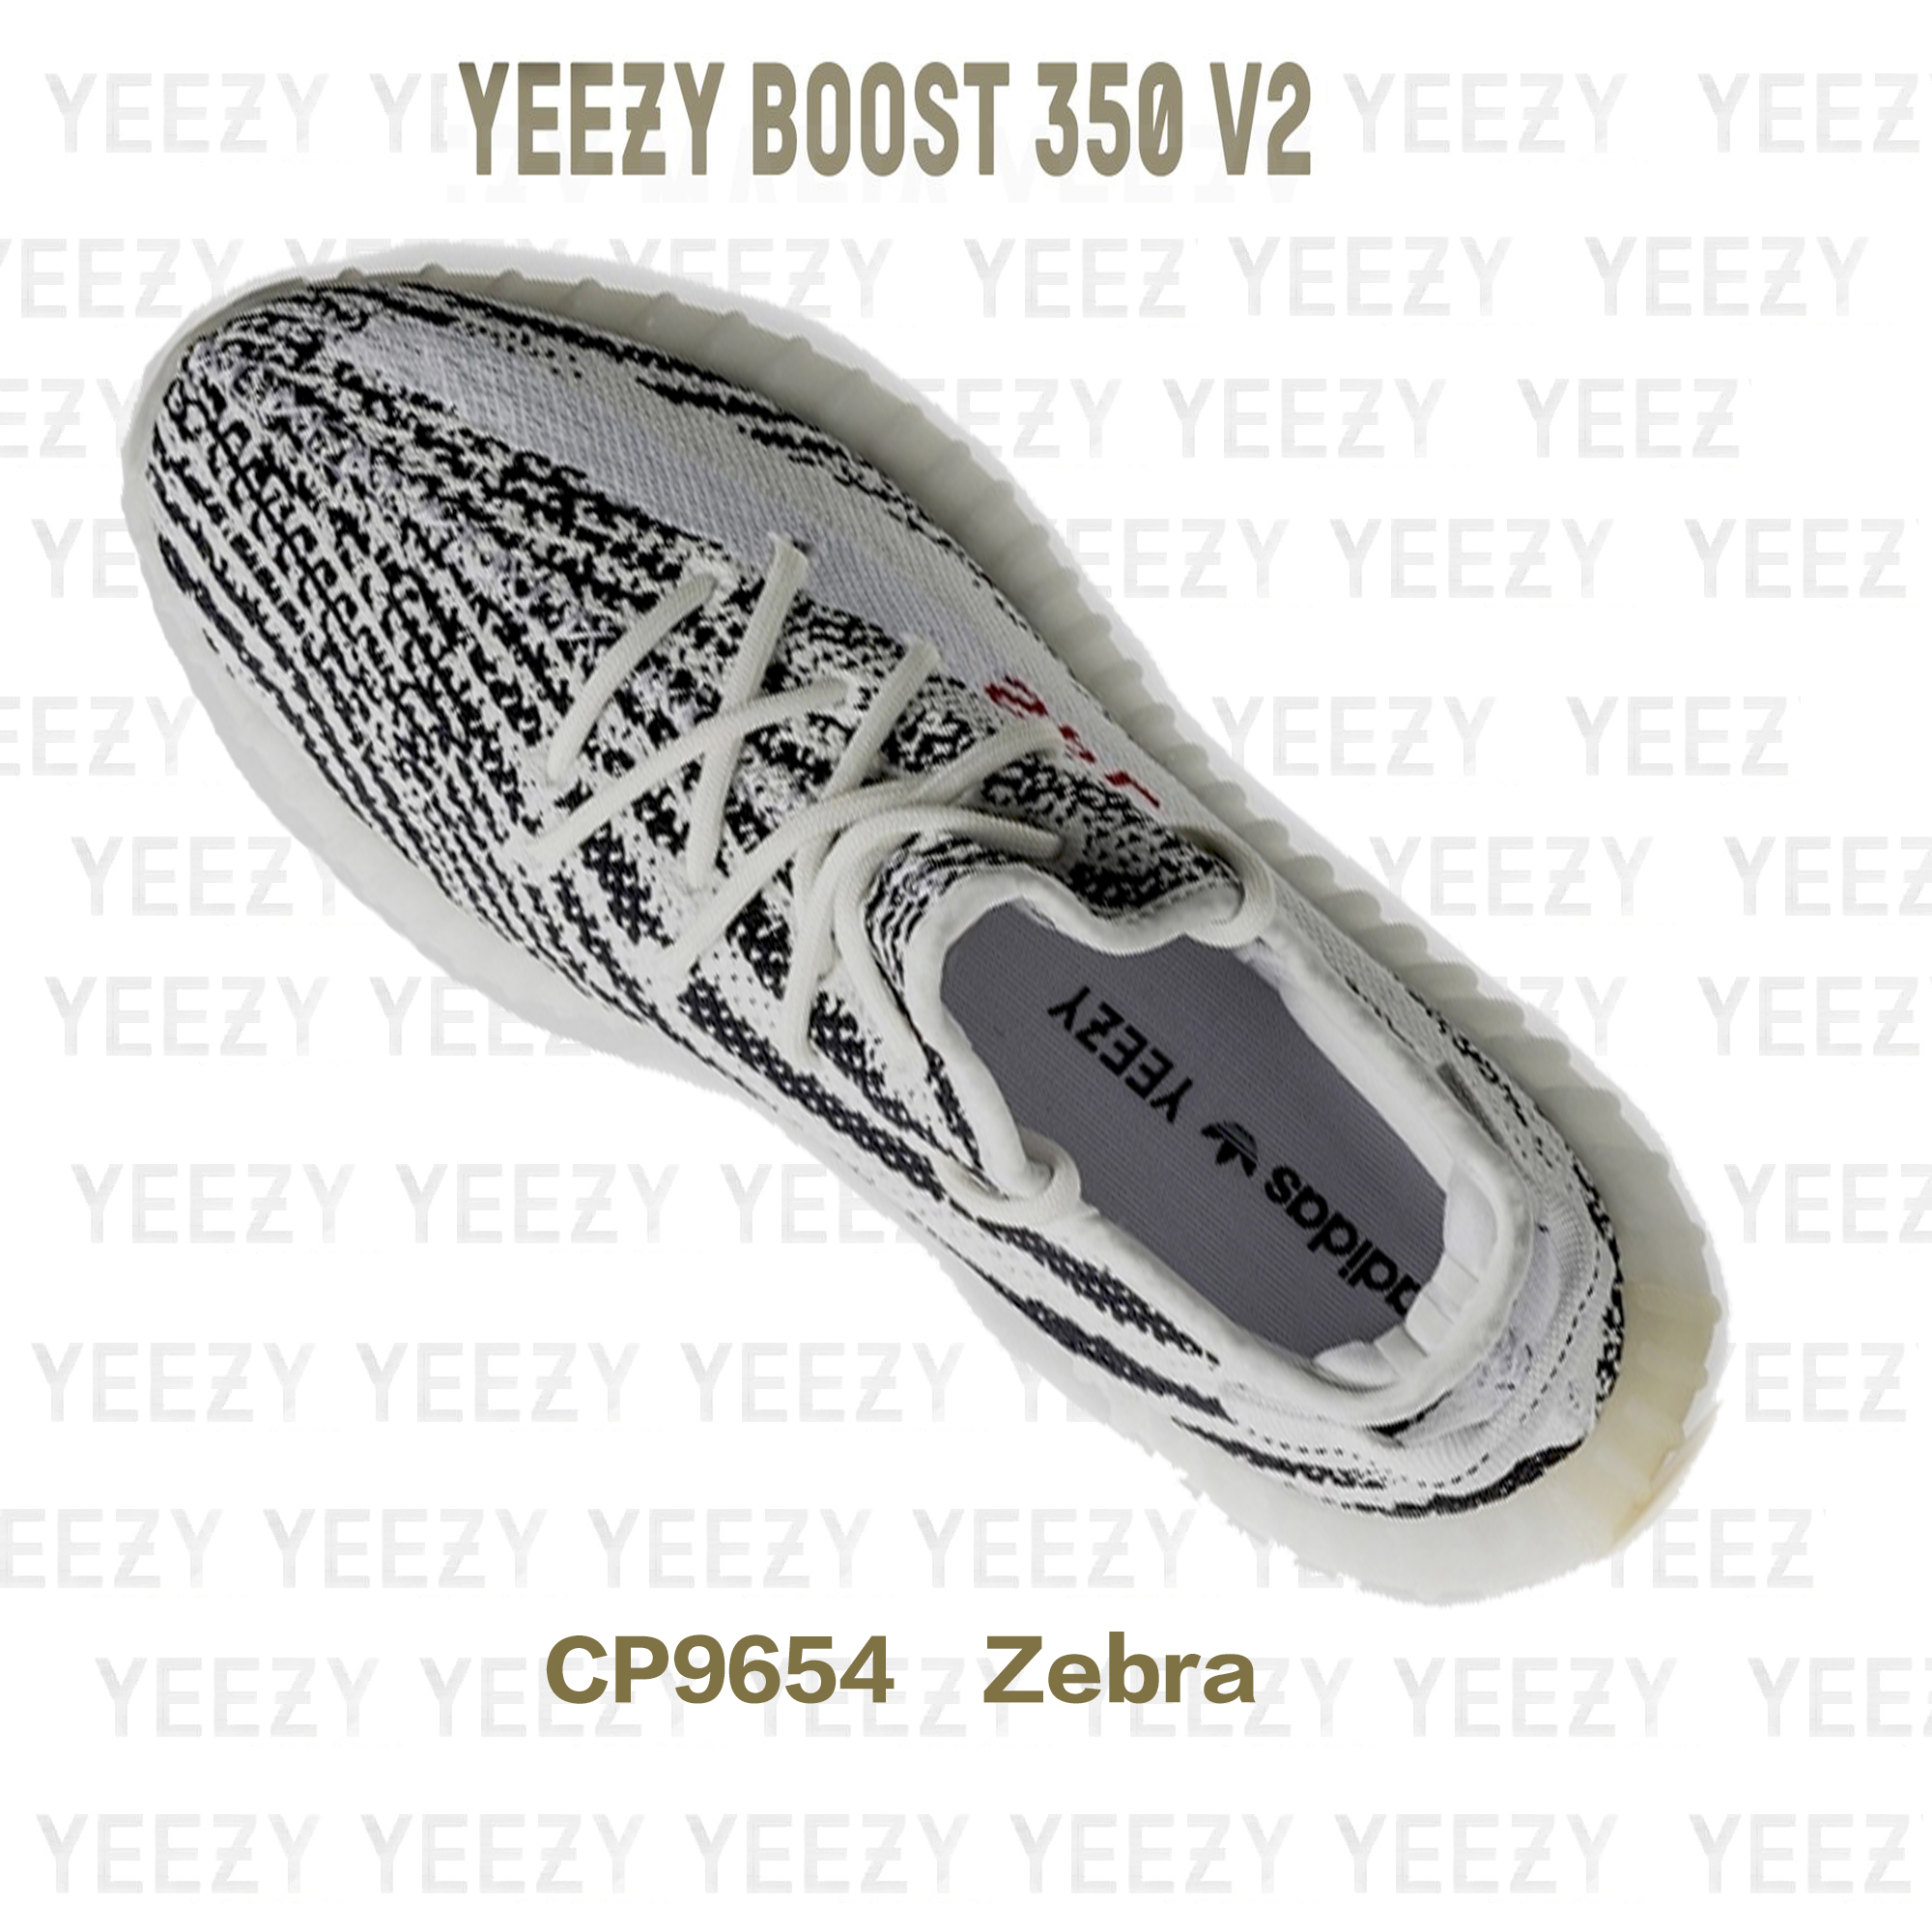 37ca51c1a292 mens yeezy boost 350 v2 zebrawhite core black red cp9654 on storenvy ...